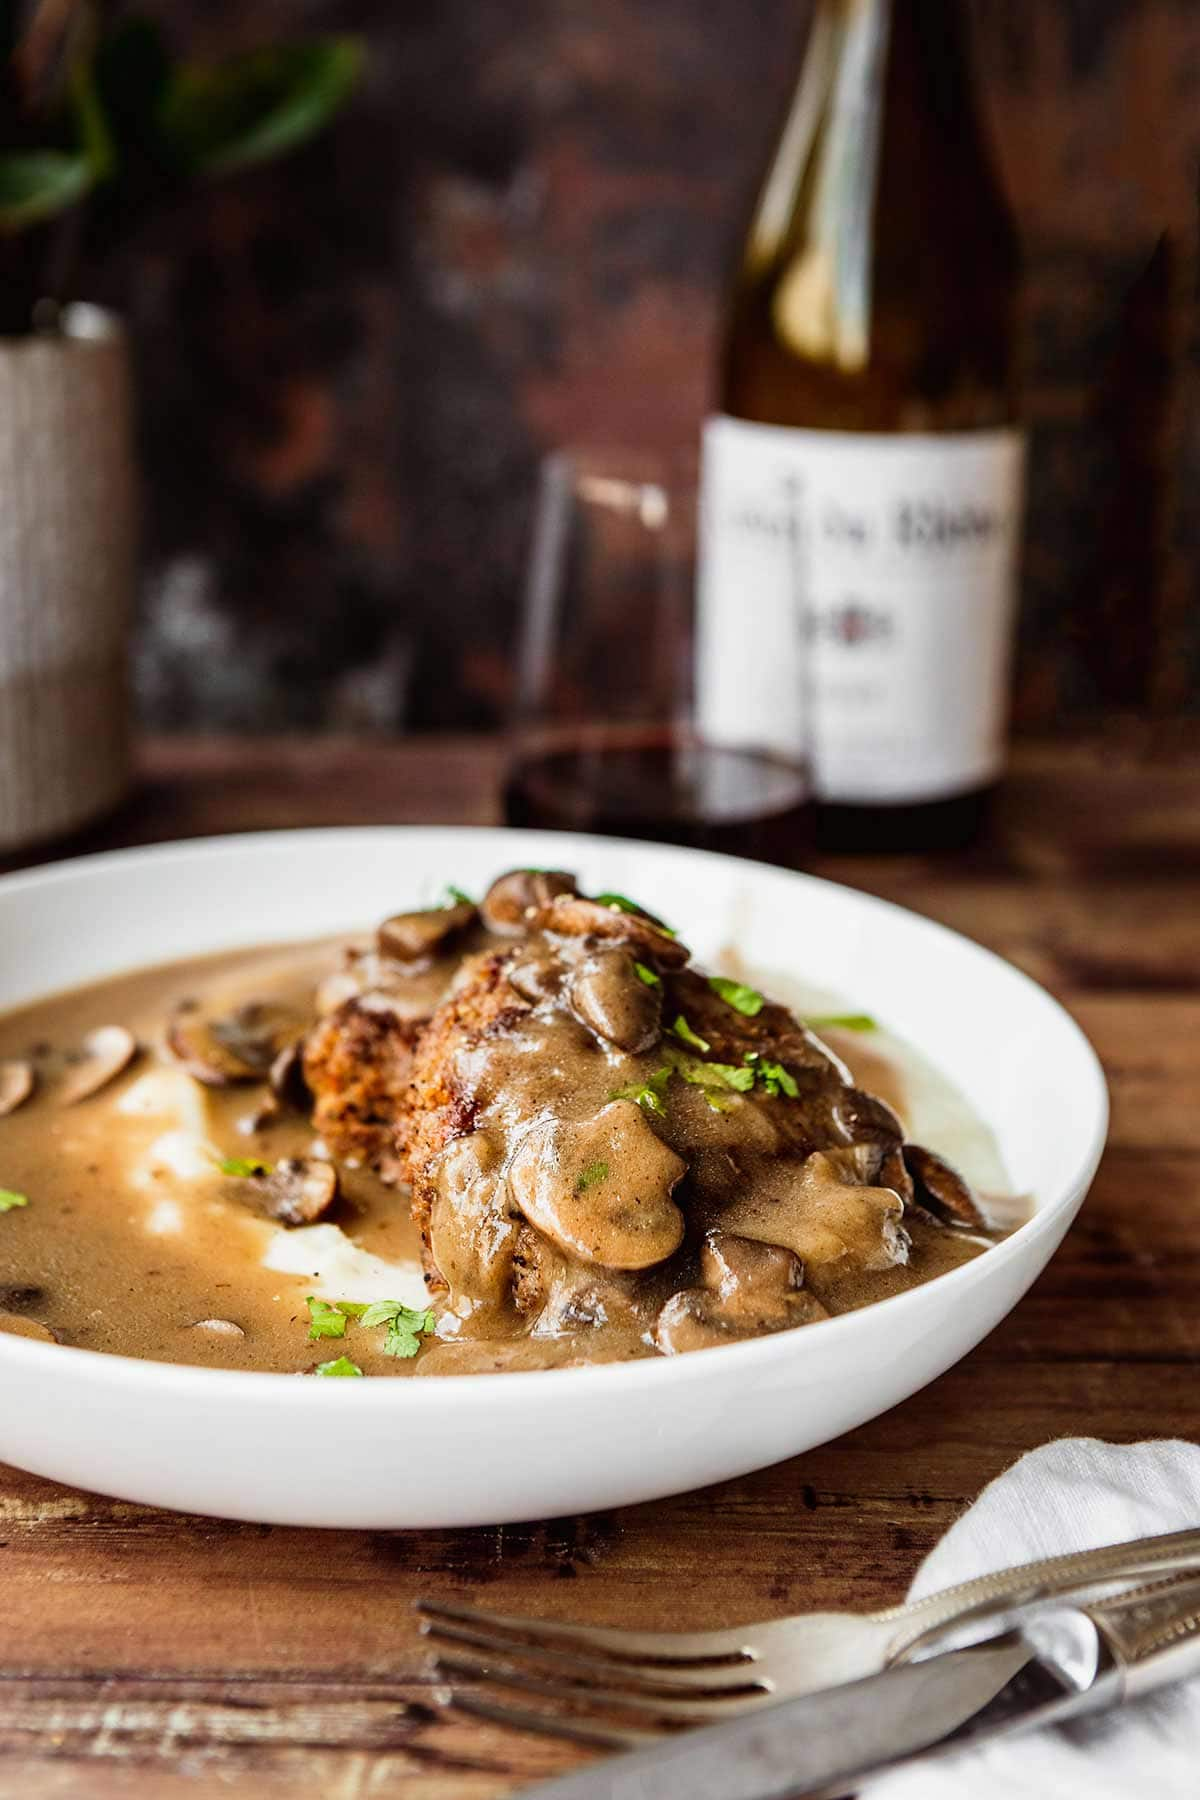 Hamburger Steaks with Mushroom Gravy served in a dish over mashed potatoes